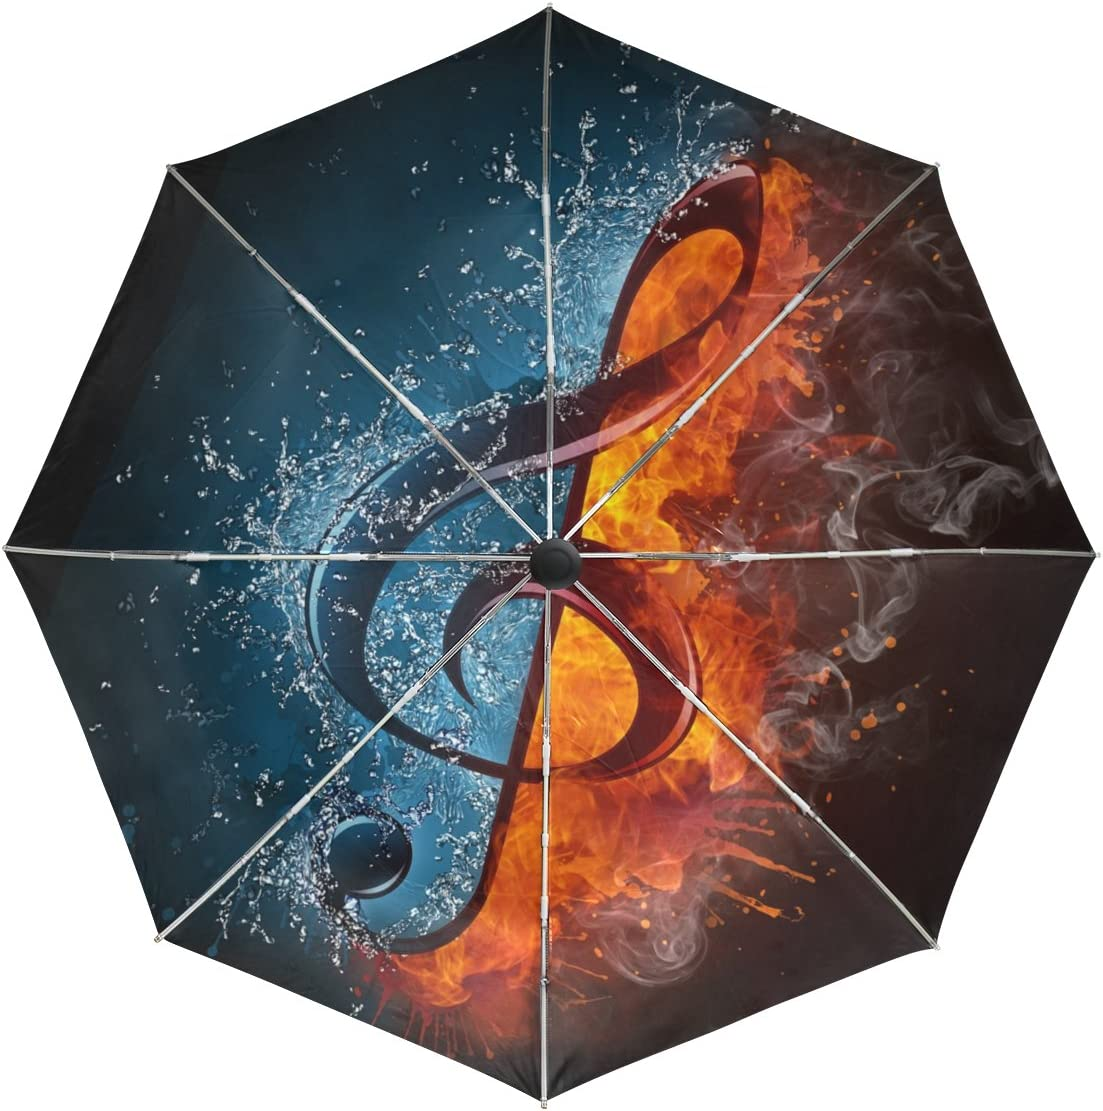 baihuishop Department store Water and Fire Musical Windproof Umbrellas Spasm price Auto Note